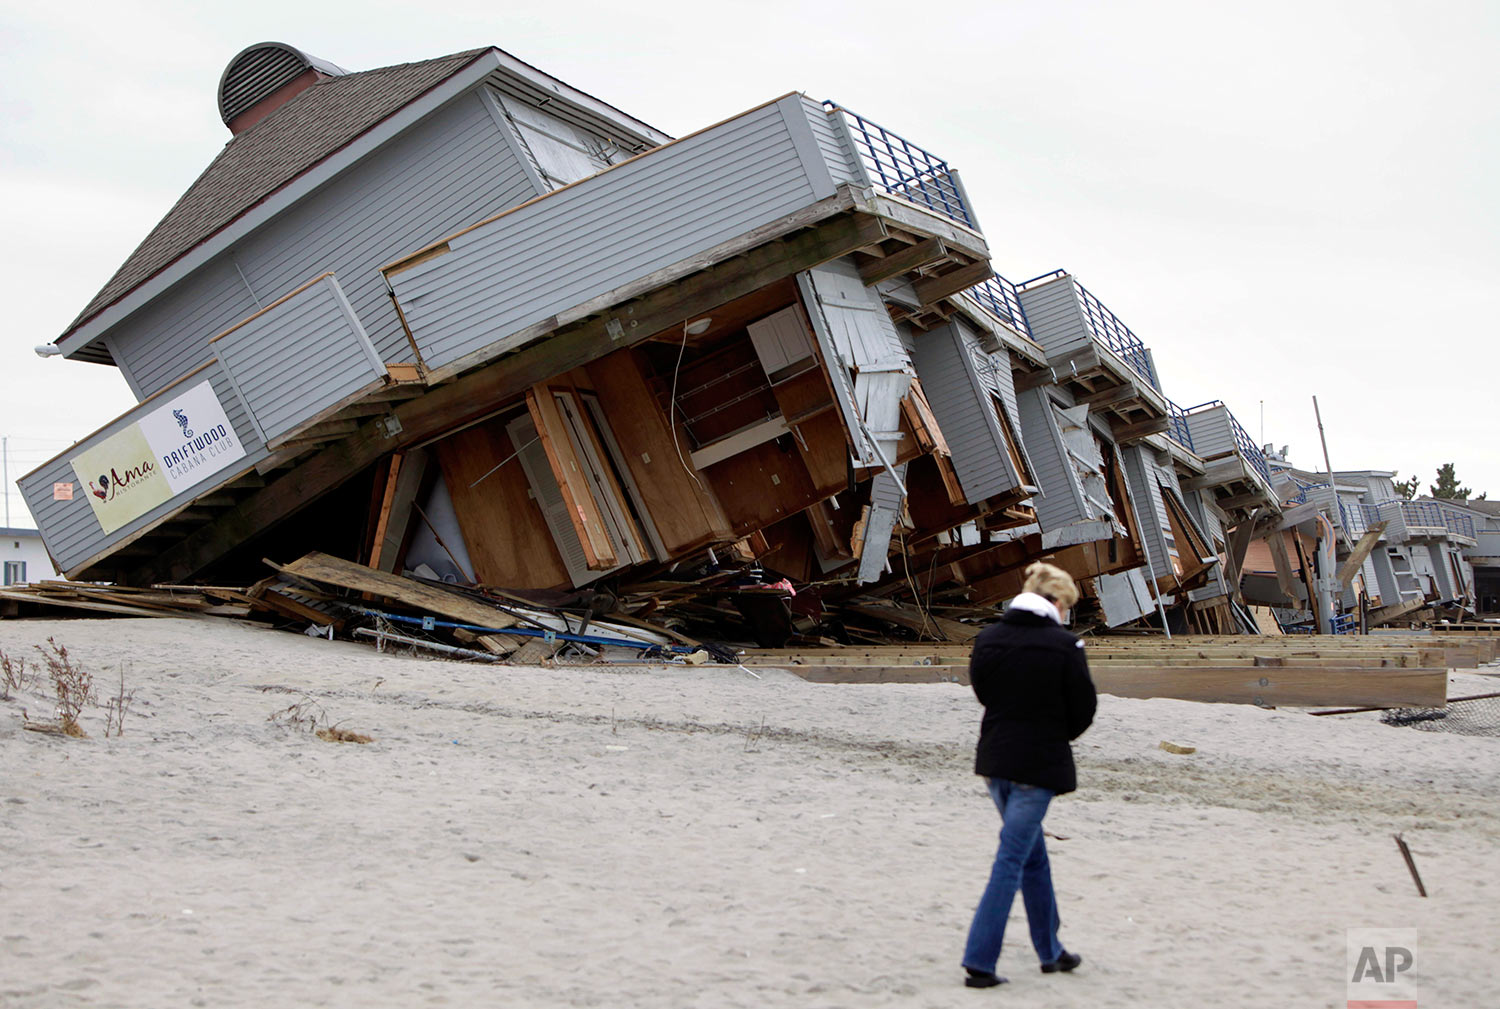 A woman walks past a cabana complex on the beach pulled off its foundations by Superstorm Sandy in Sea Bright, N.J., Monday, Nov. 19, 2012. (AP Photo/Seth Wenig)